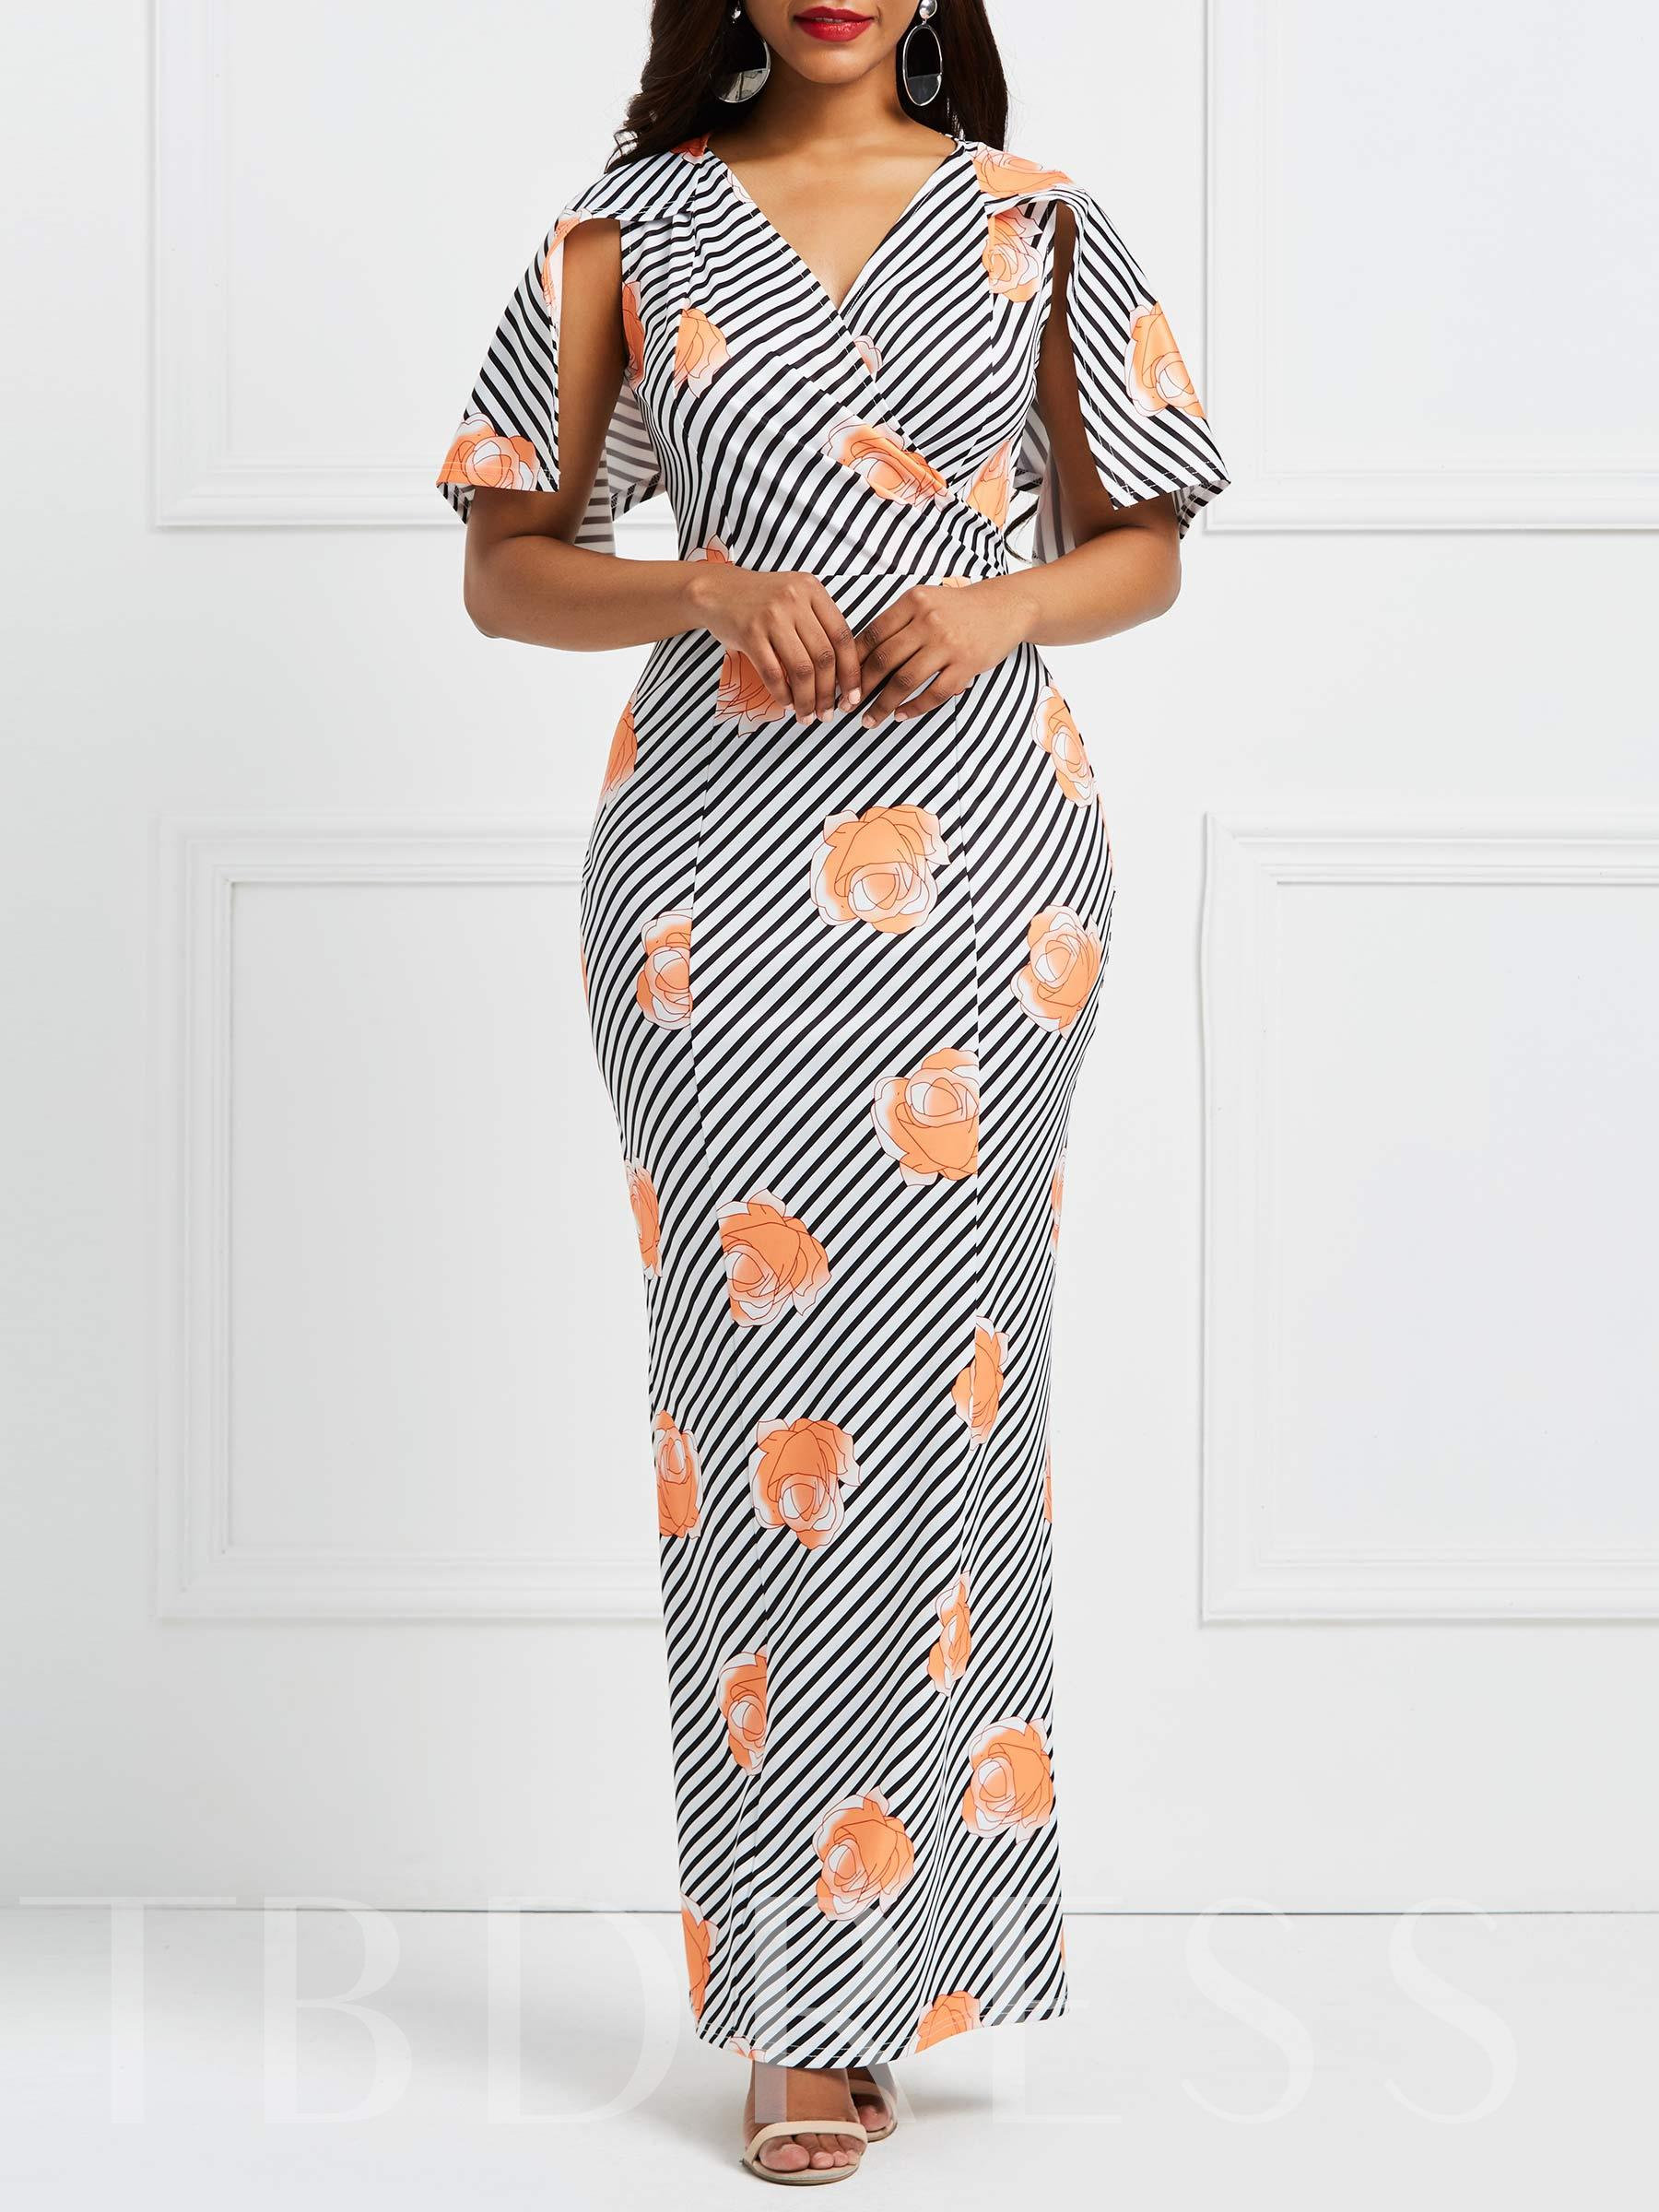 Buy Half Sleeve Floral Prints Women's Maxi Dress, 13335933 for $18.38 in TBDress store